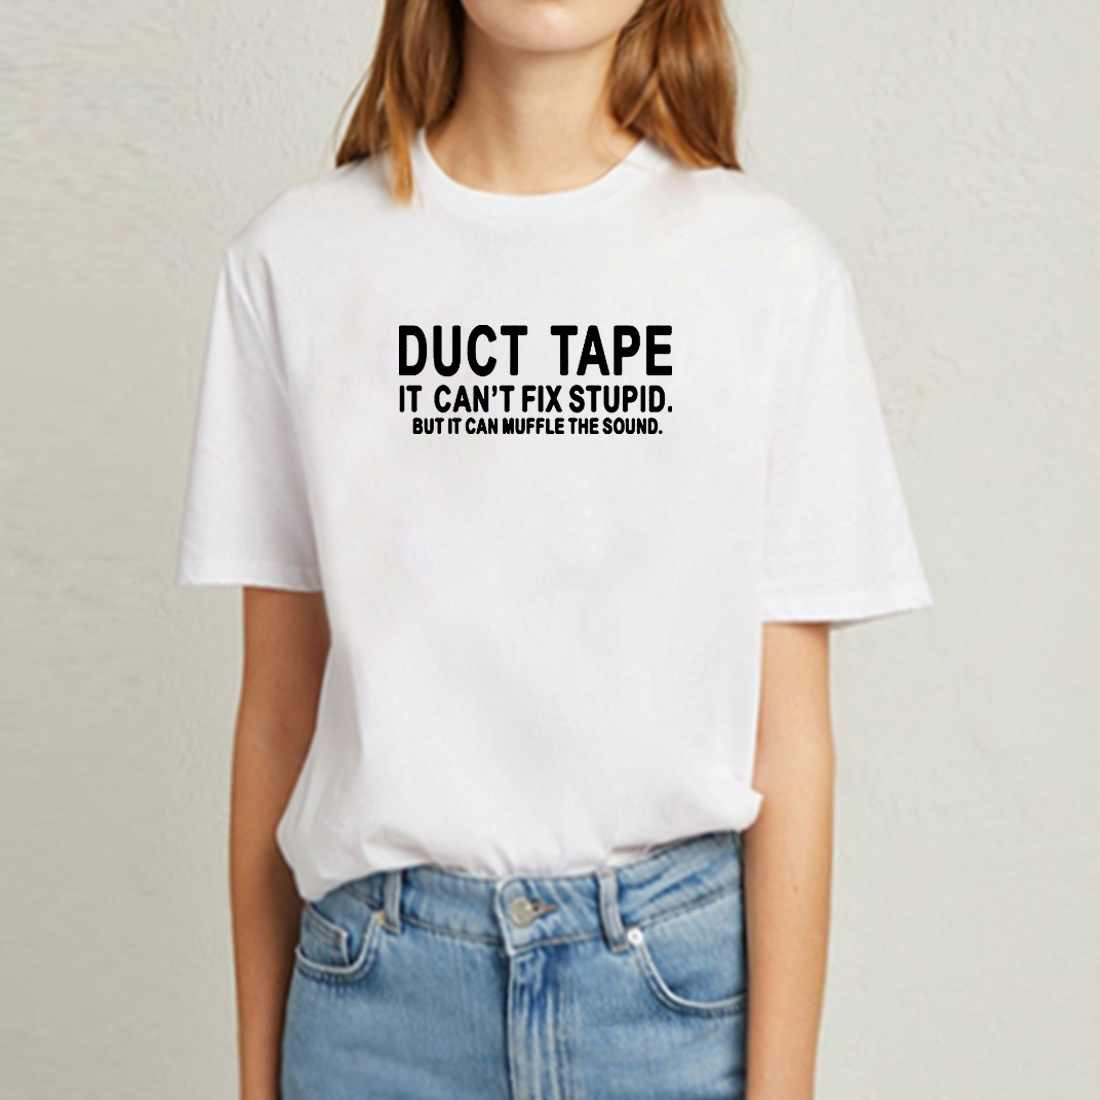 Duct Tape It Can't Fix Stupid divertidas camisetas para mujeres Top o-cuello manga corta Camiseta de algodón Femme negro blanco camiseta mujeres